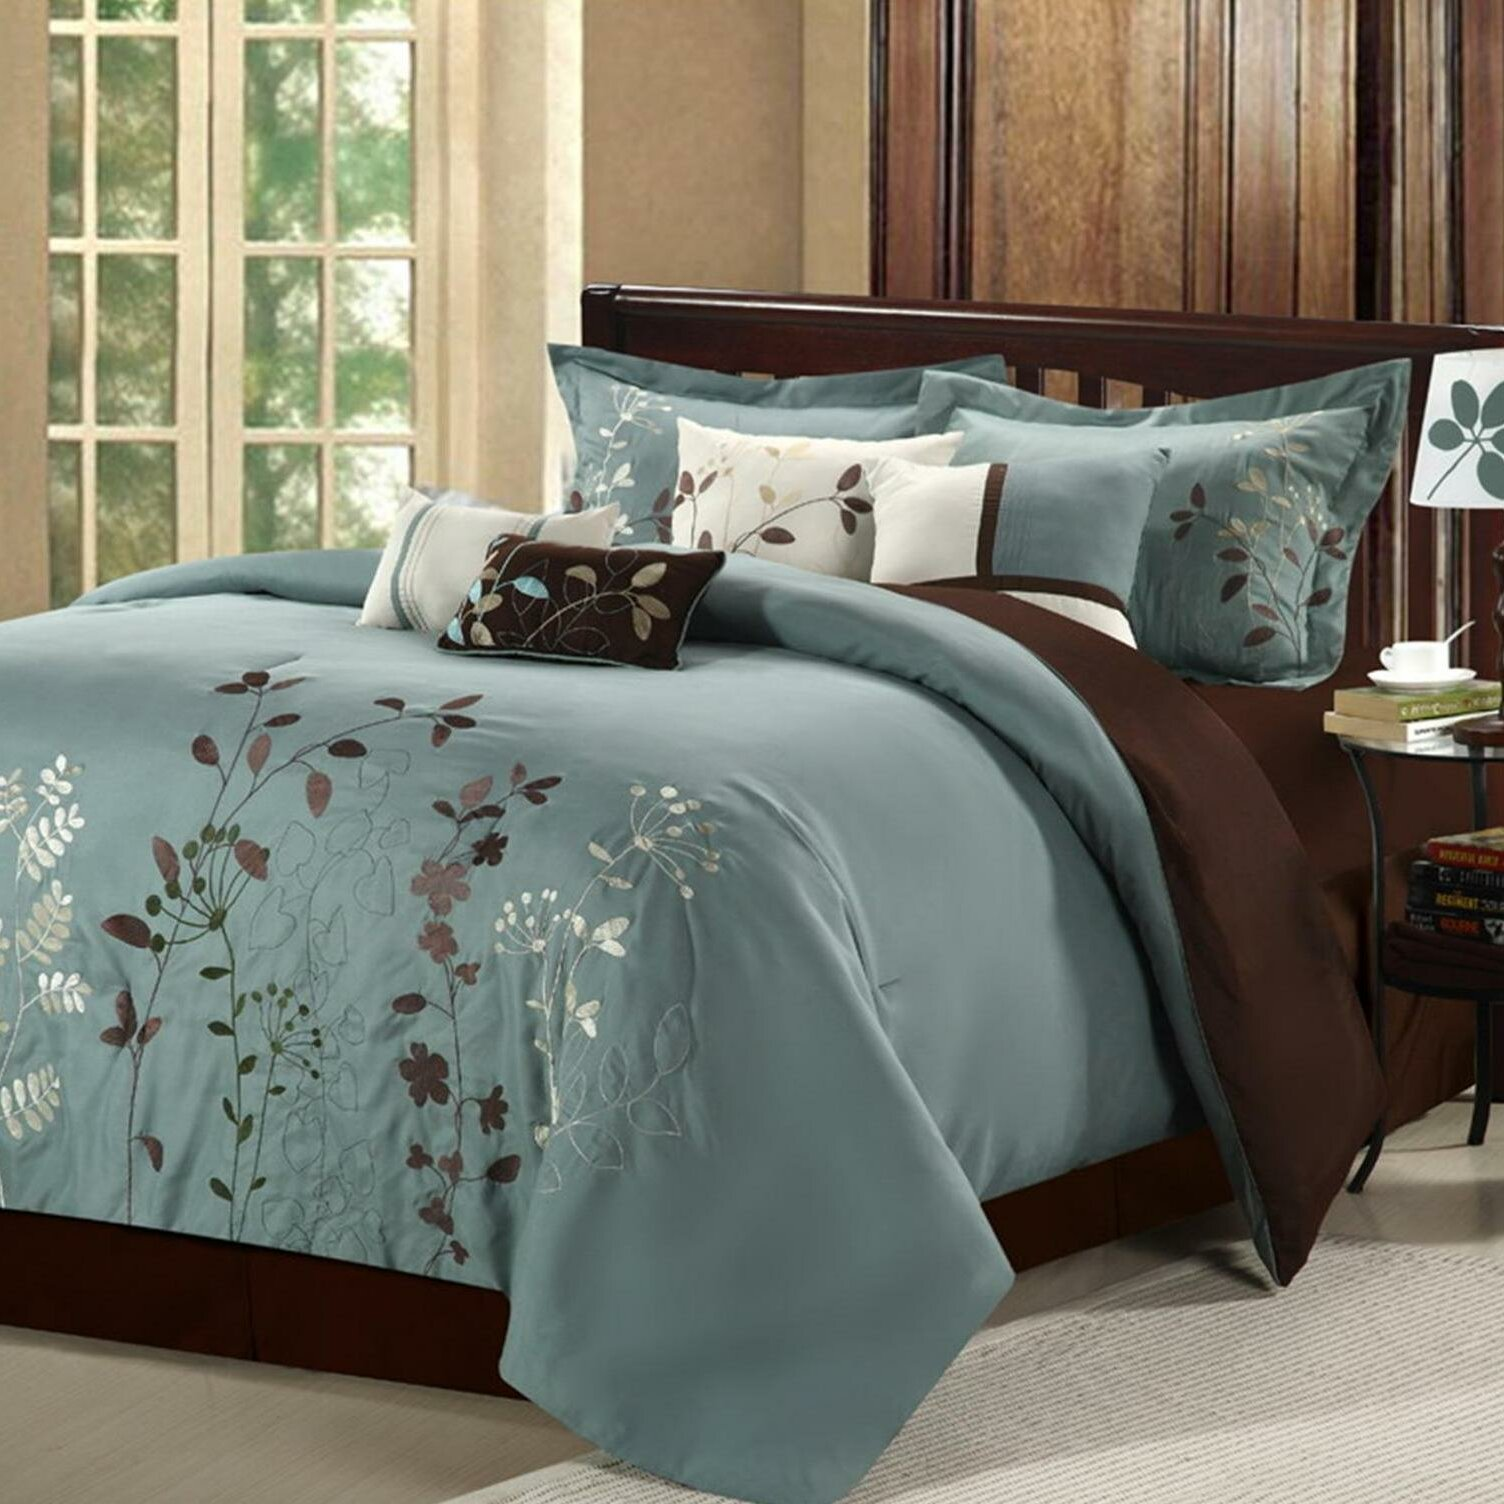 Chic Home Bliss Garden 8 Piece Comforter Set Amp Reviews